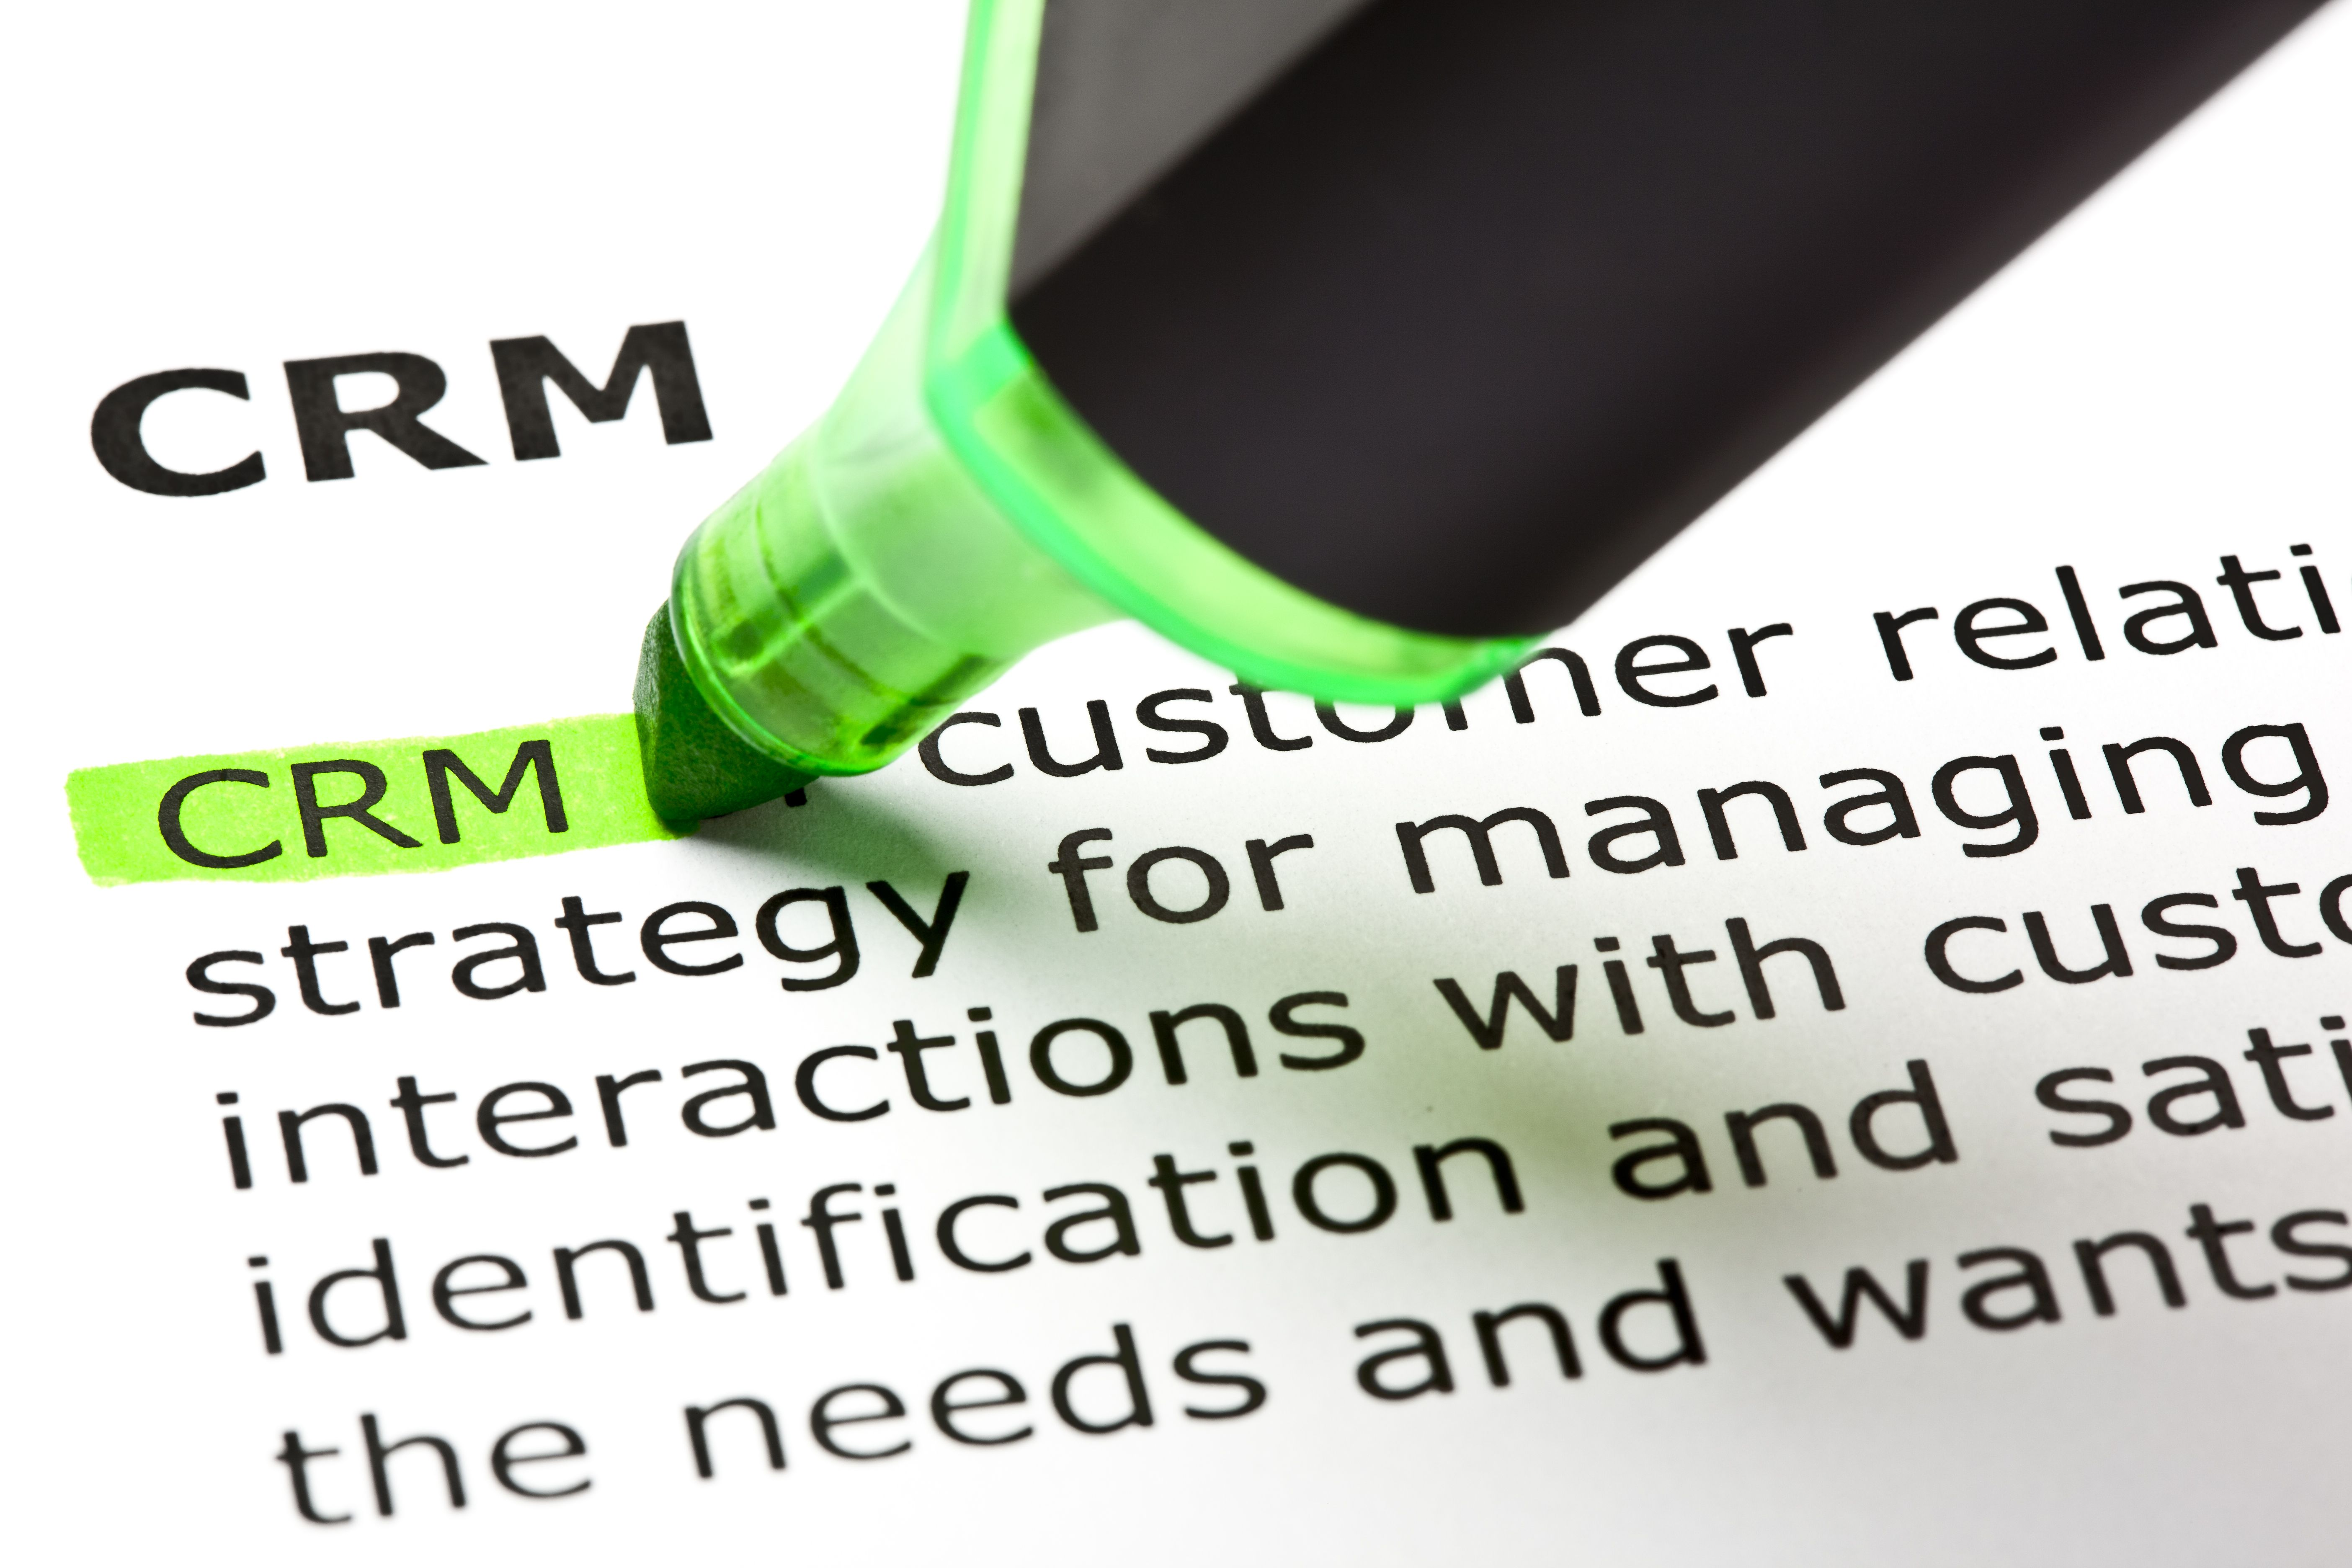 What is an operational CRM?